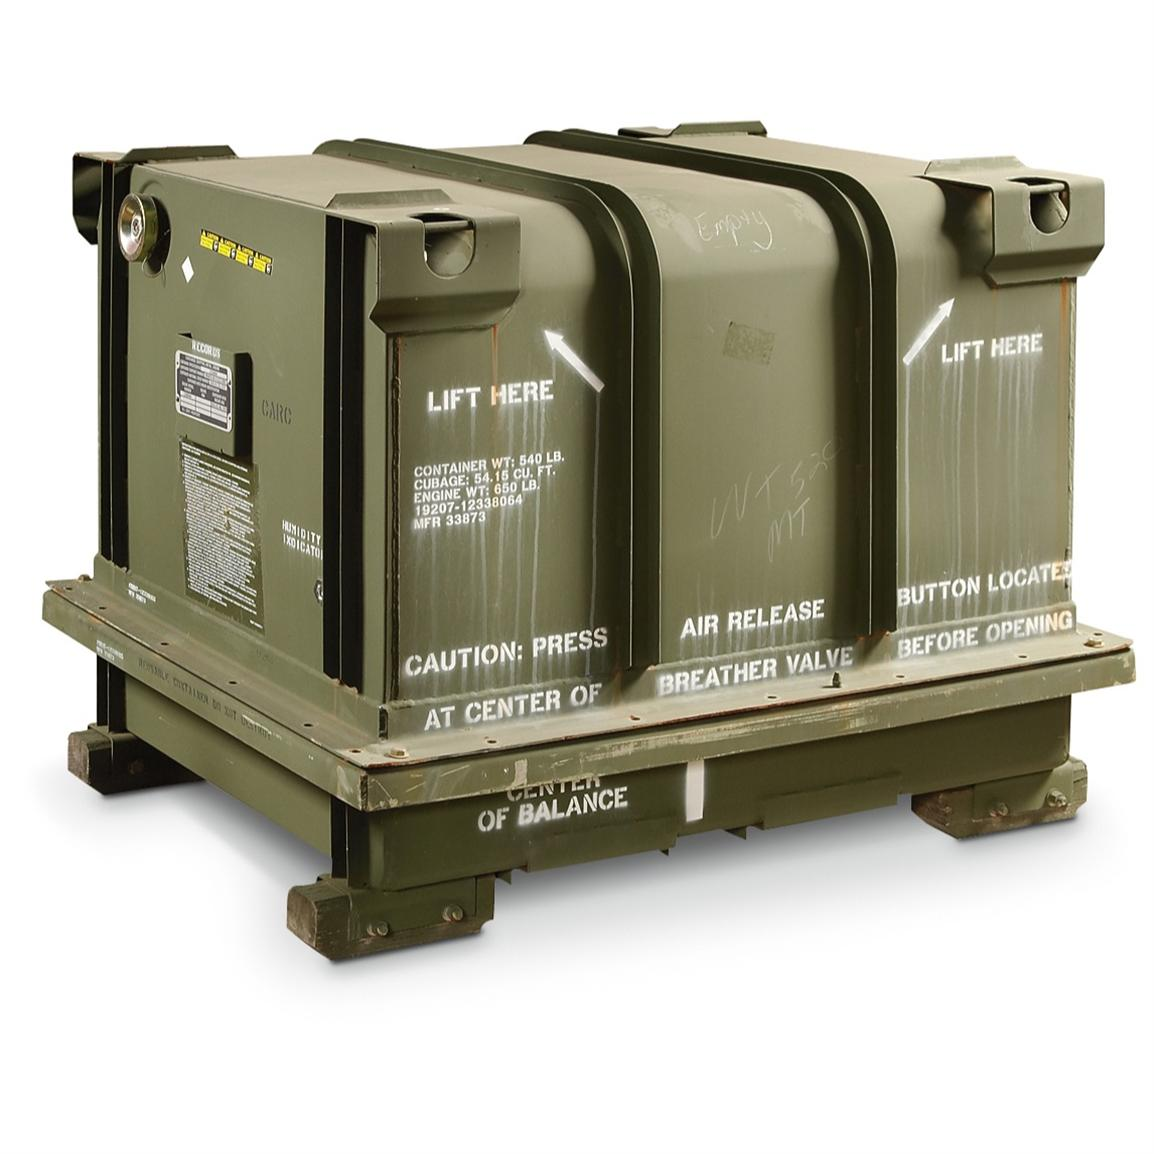 Le Meilleur New U S Military Engine Shipping Container Olive Drab Ce Mois Ci